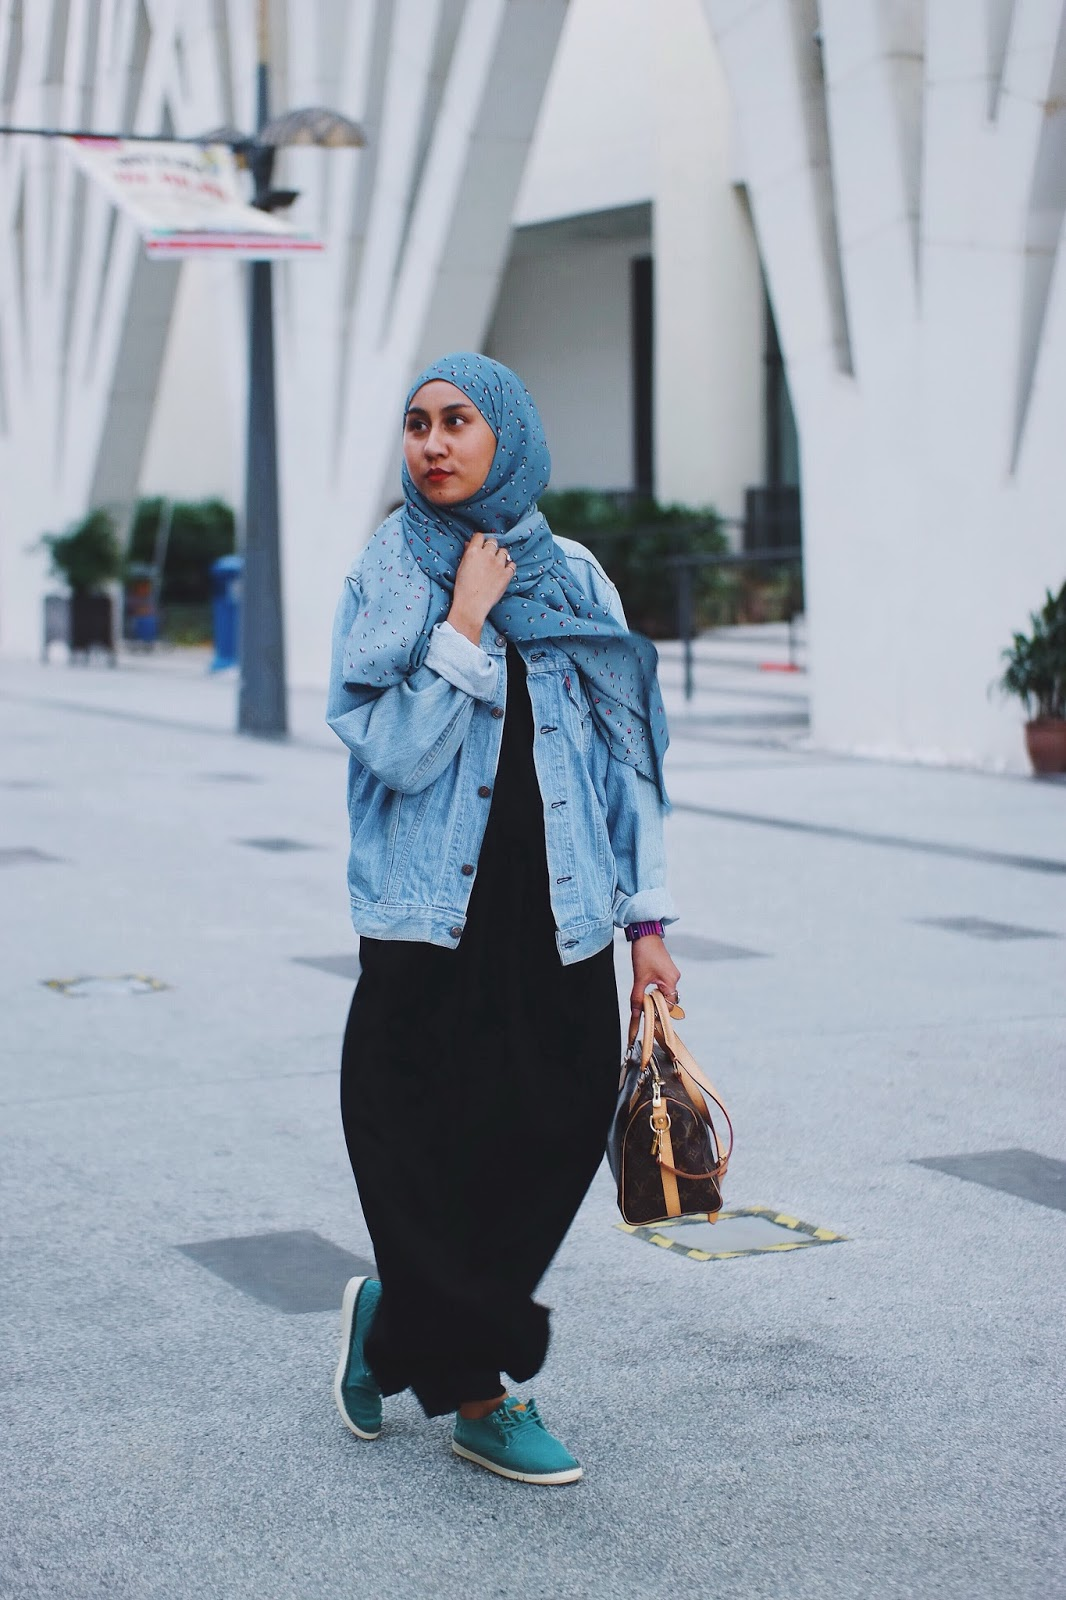 Style Hijab With Jeans Jacket